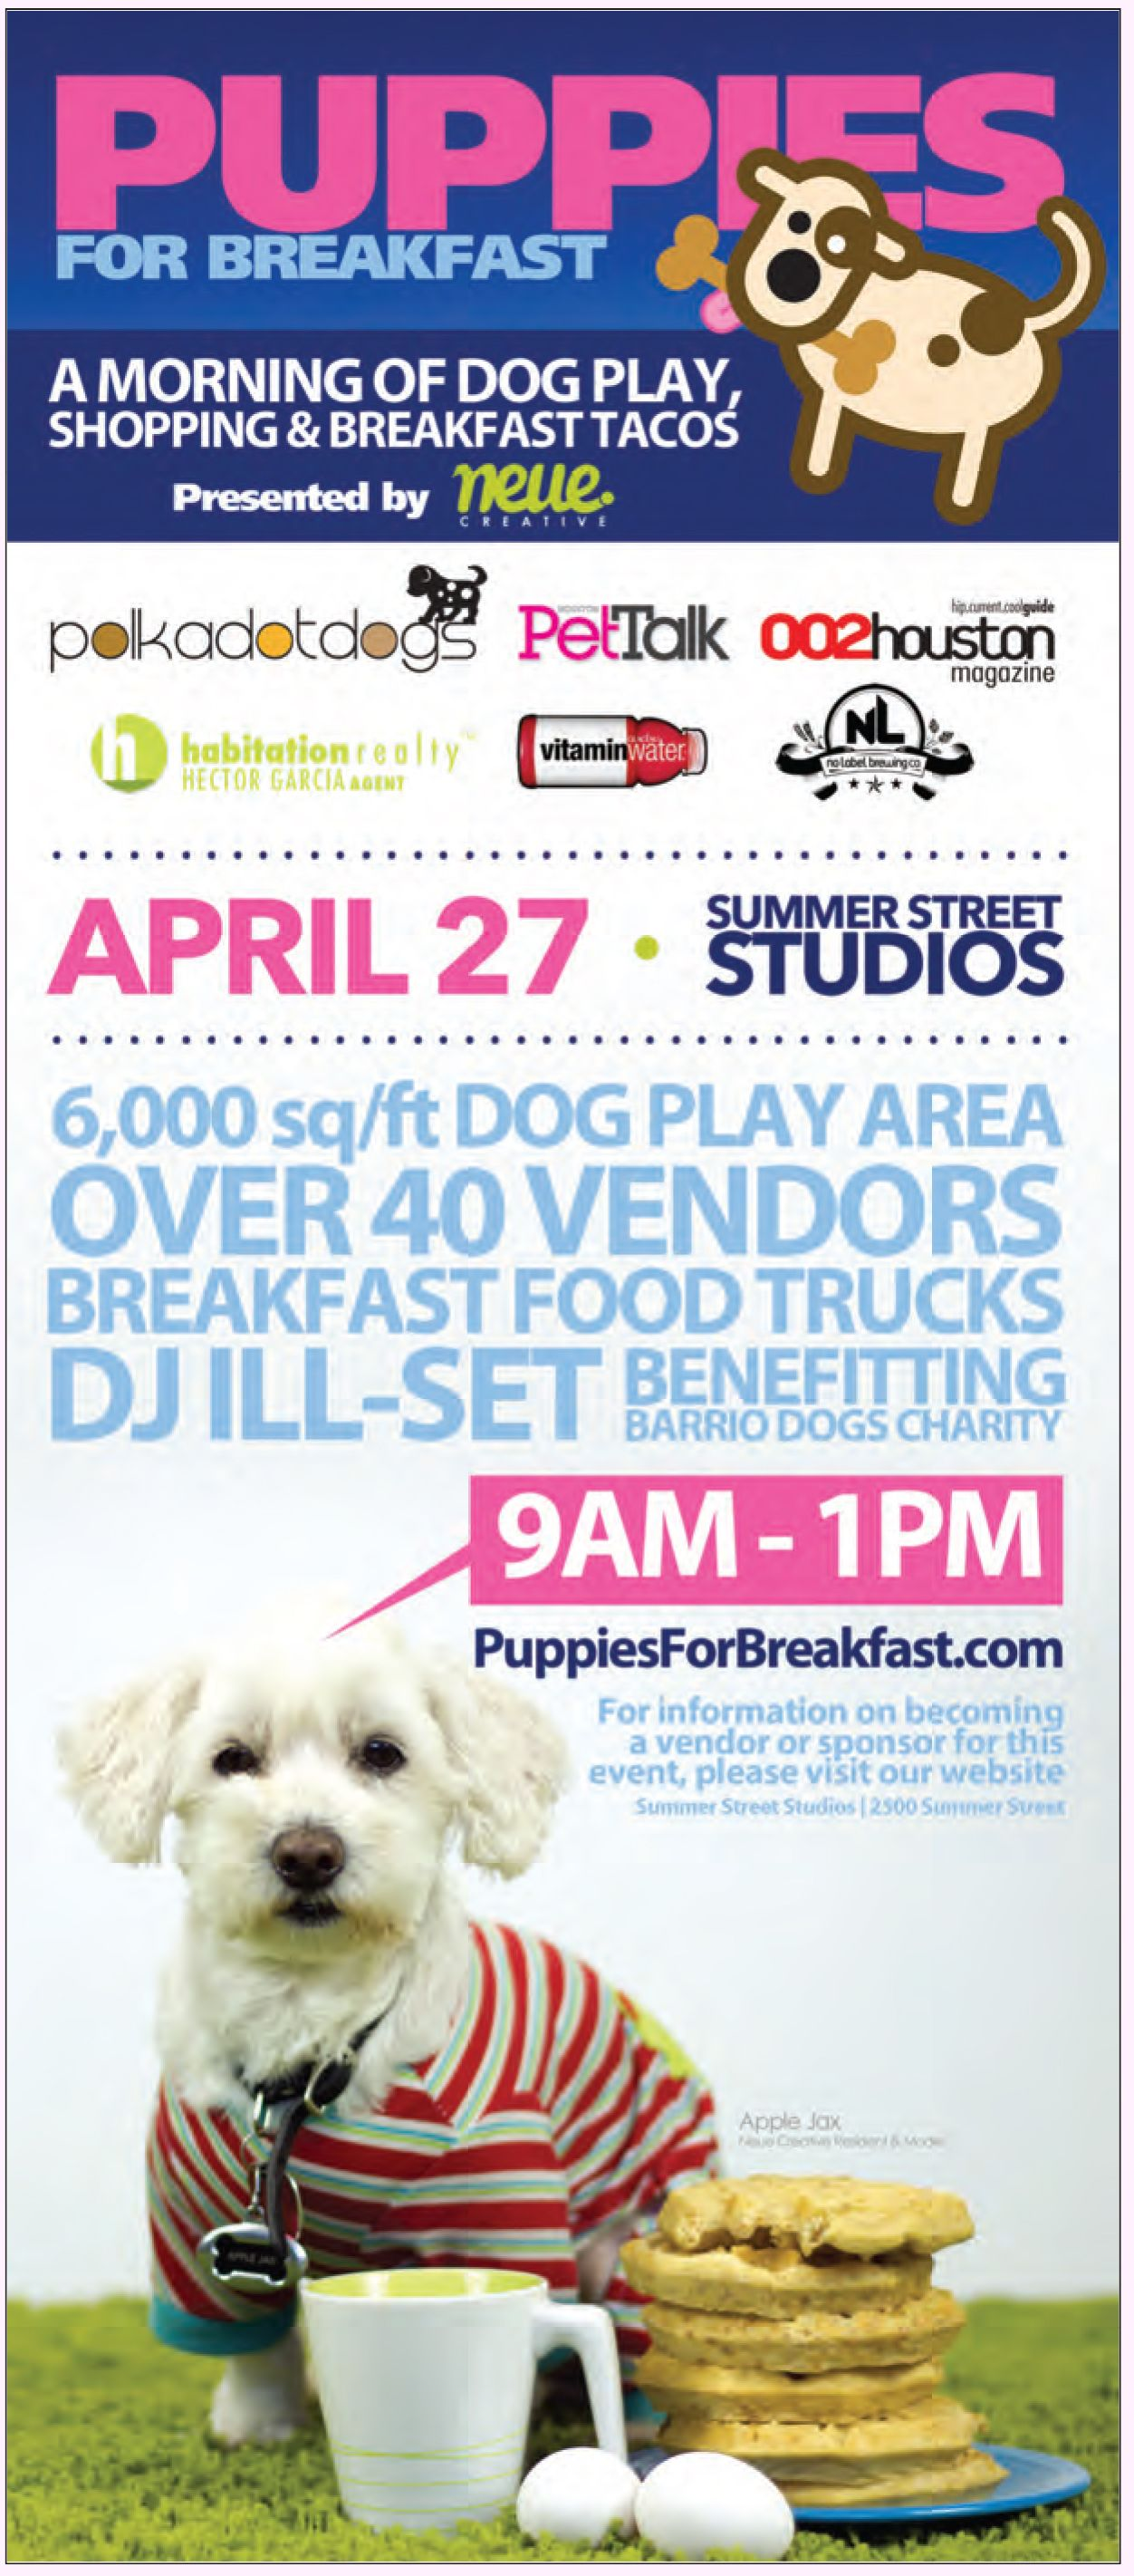 Tomorrow From 9am 1pm Is Puppies For Breakfast The Puppy Loving Event Is A Fundraiser Benefitting Barrio Dogs Charity That S Filled With Dog Play Dog Charities